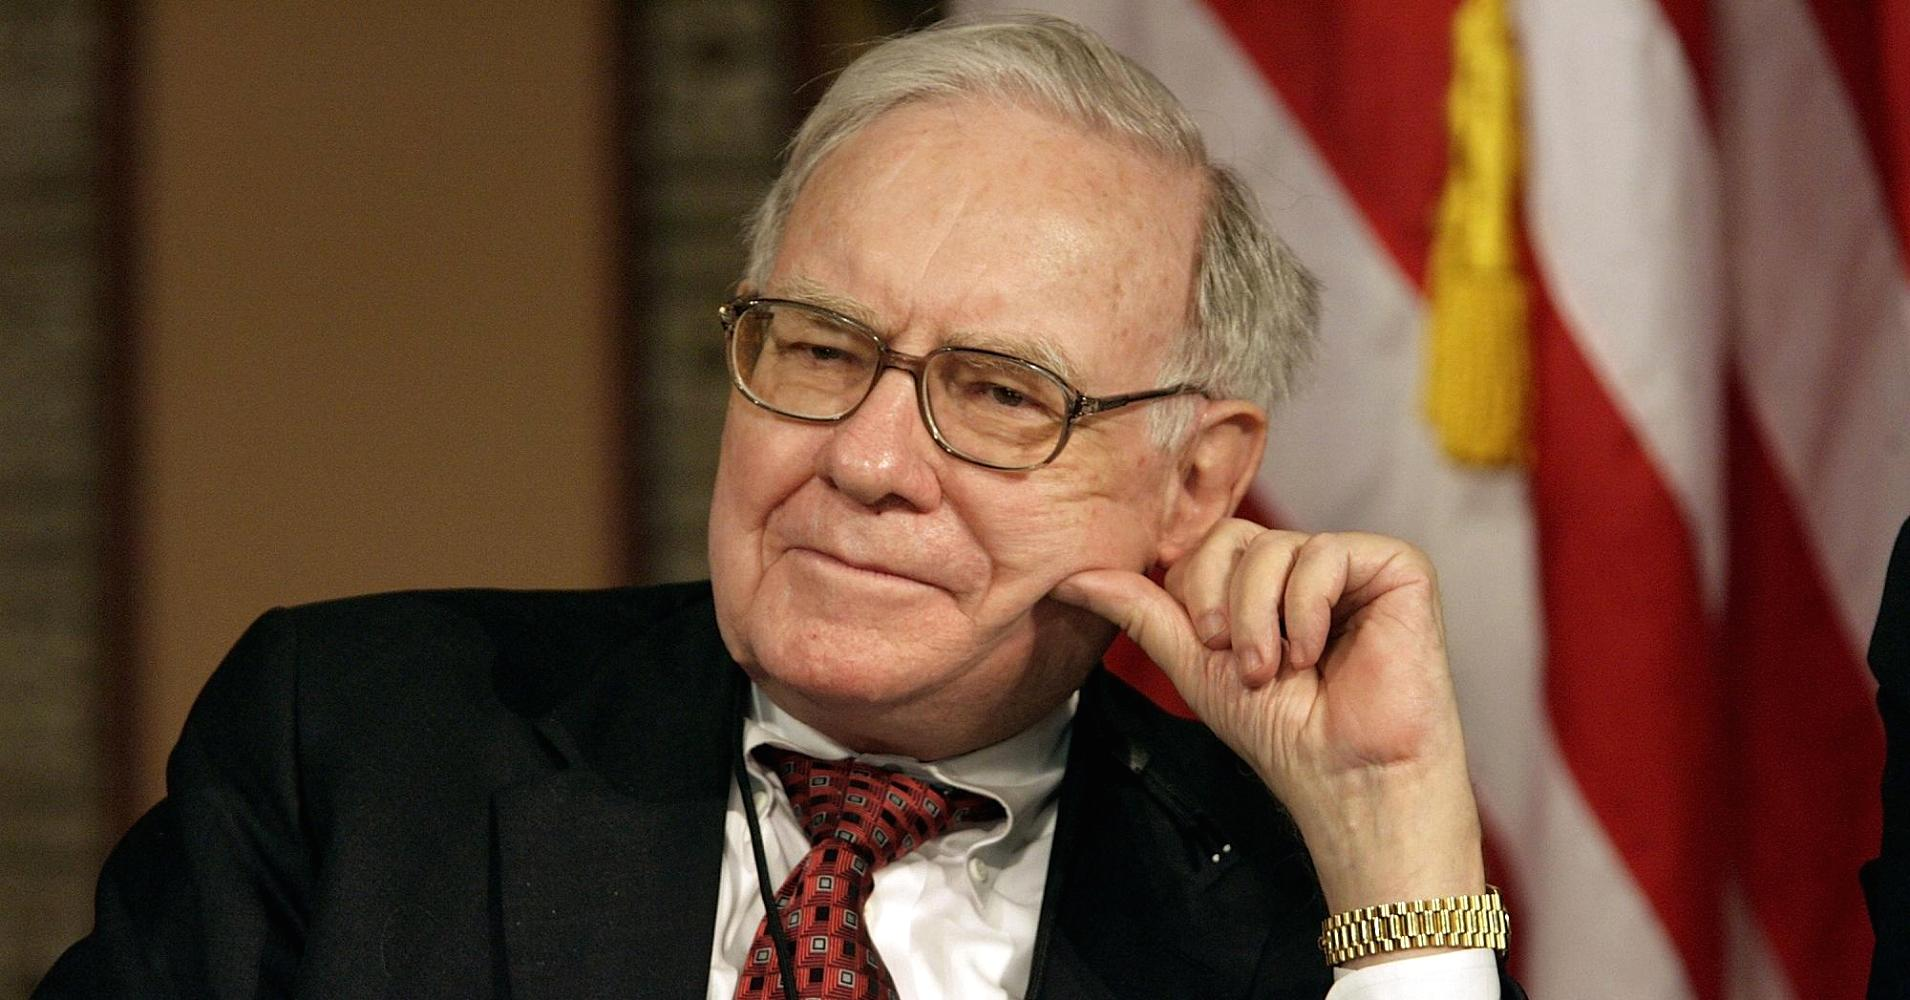 berkshire hathaway ceo and business mogul warren buffett will share his 2017 annual shareholder letter this morning and the business world will be taking